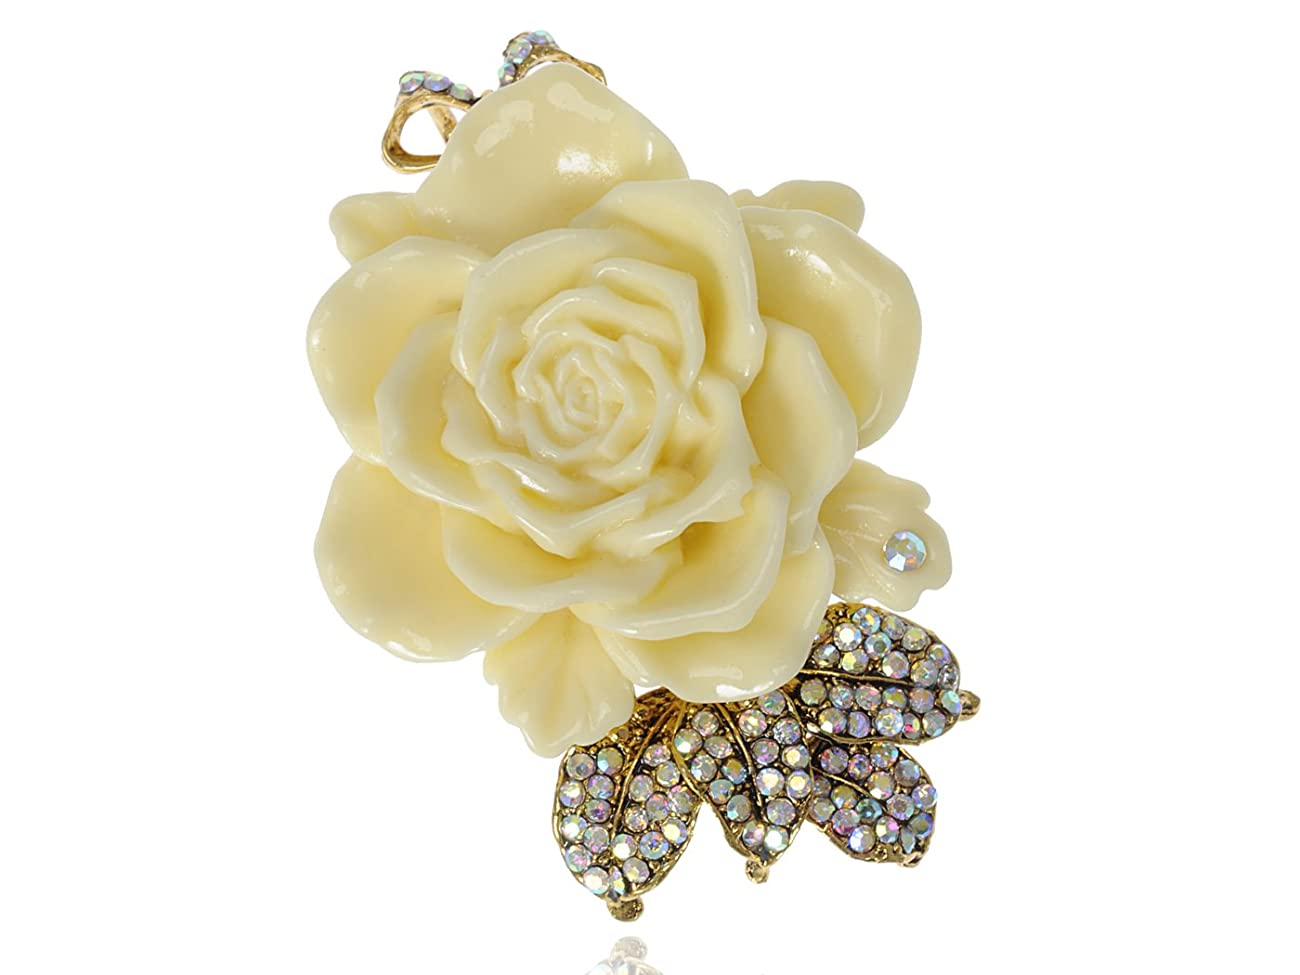 Vintage Inspired Tone Elegant Cream White Resin Enamel Rose Crystal Rhinestone Fashion Jewelry 0